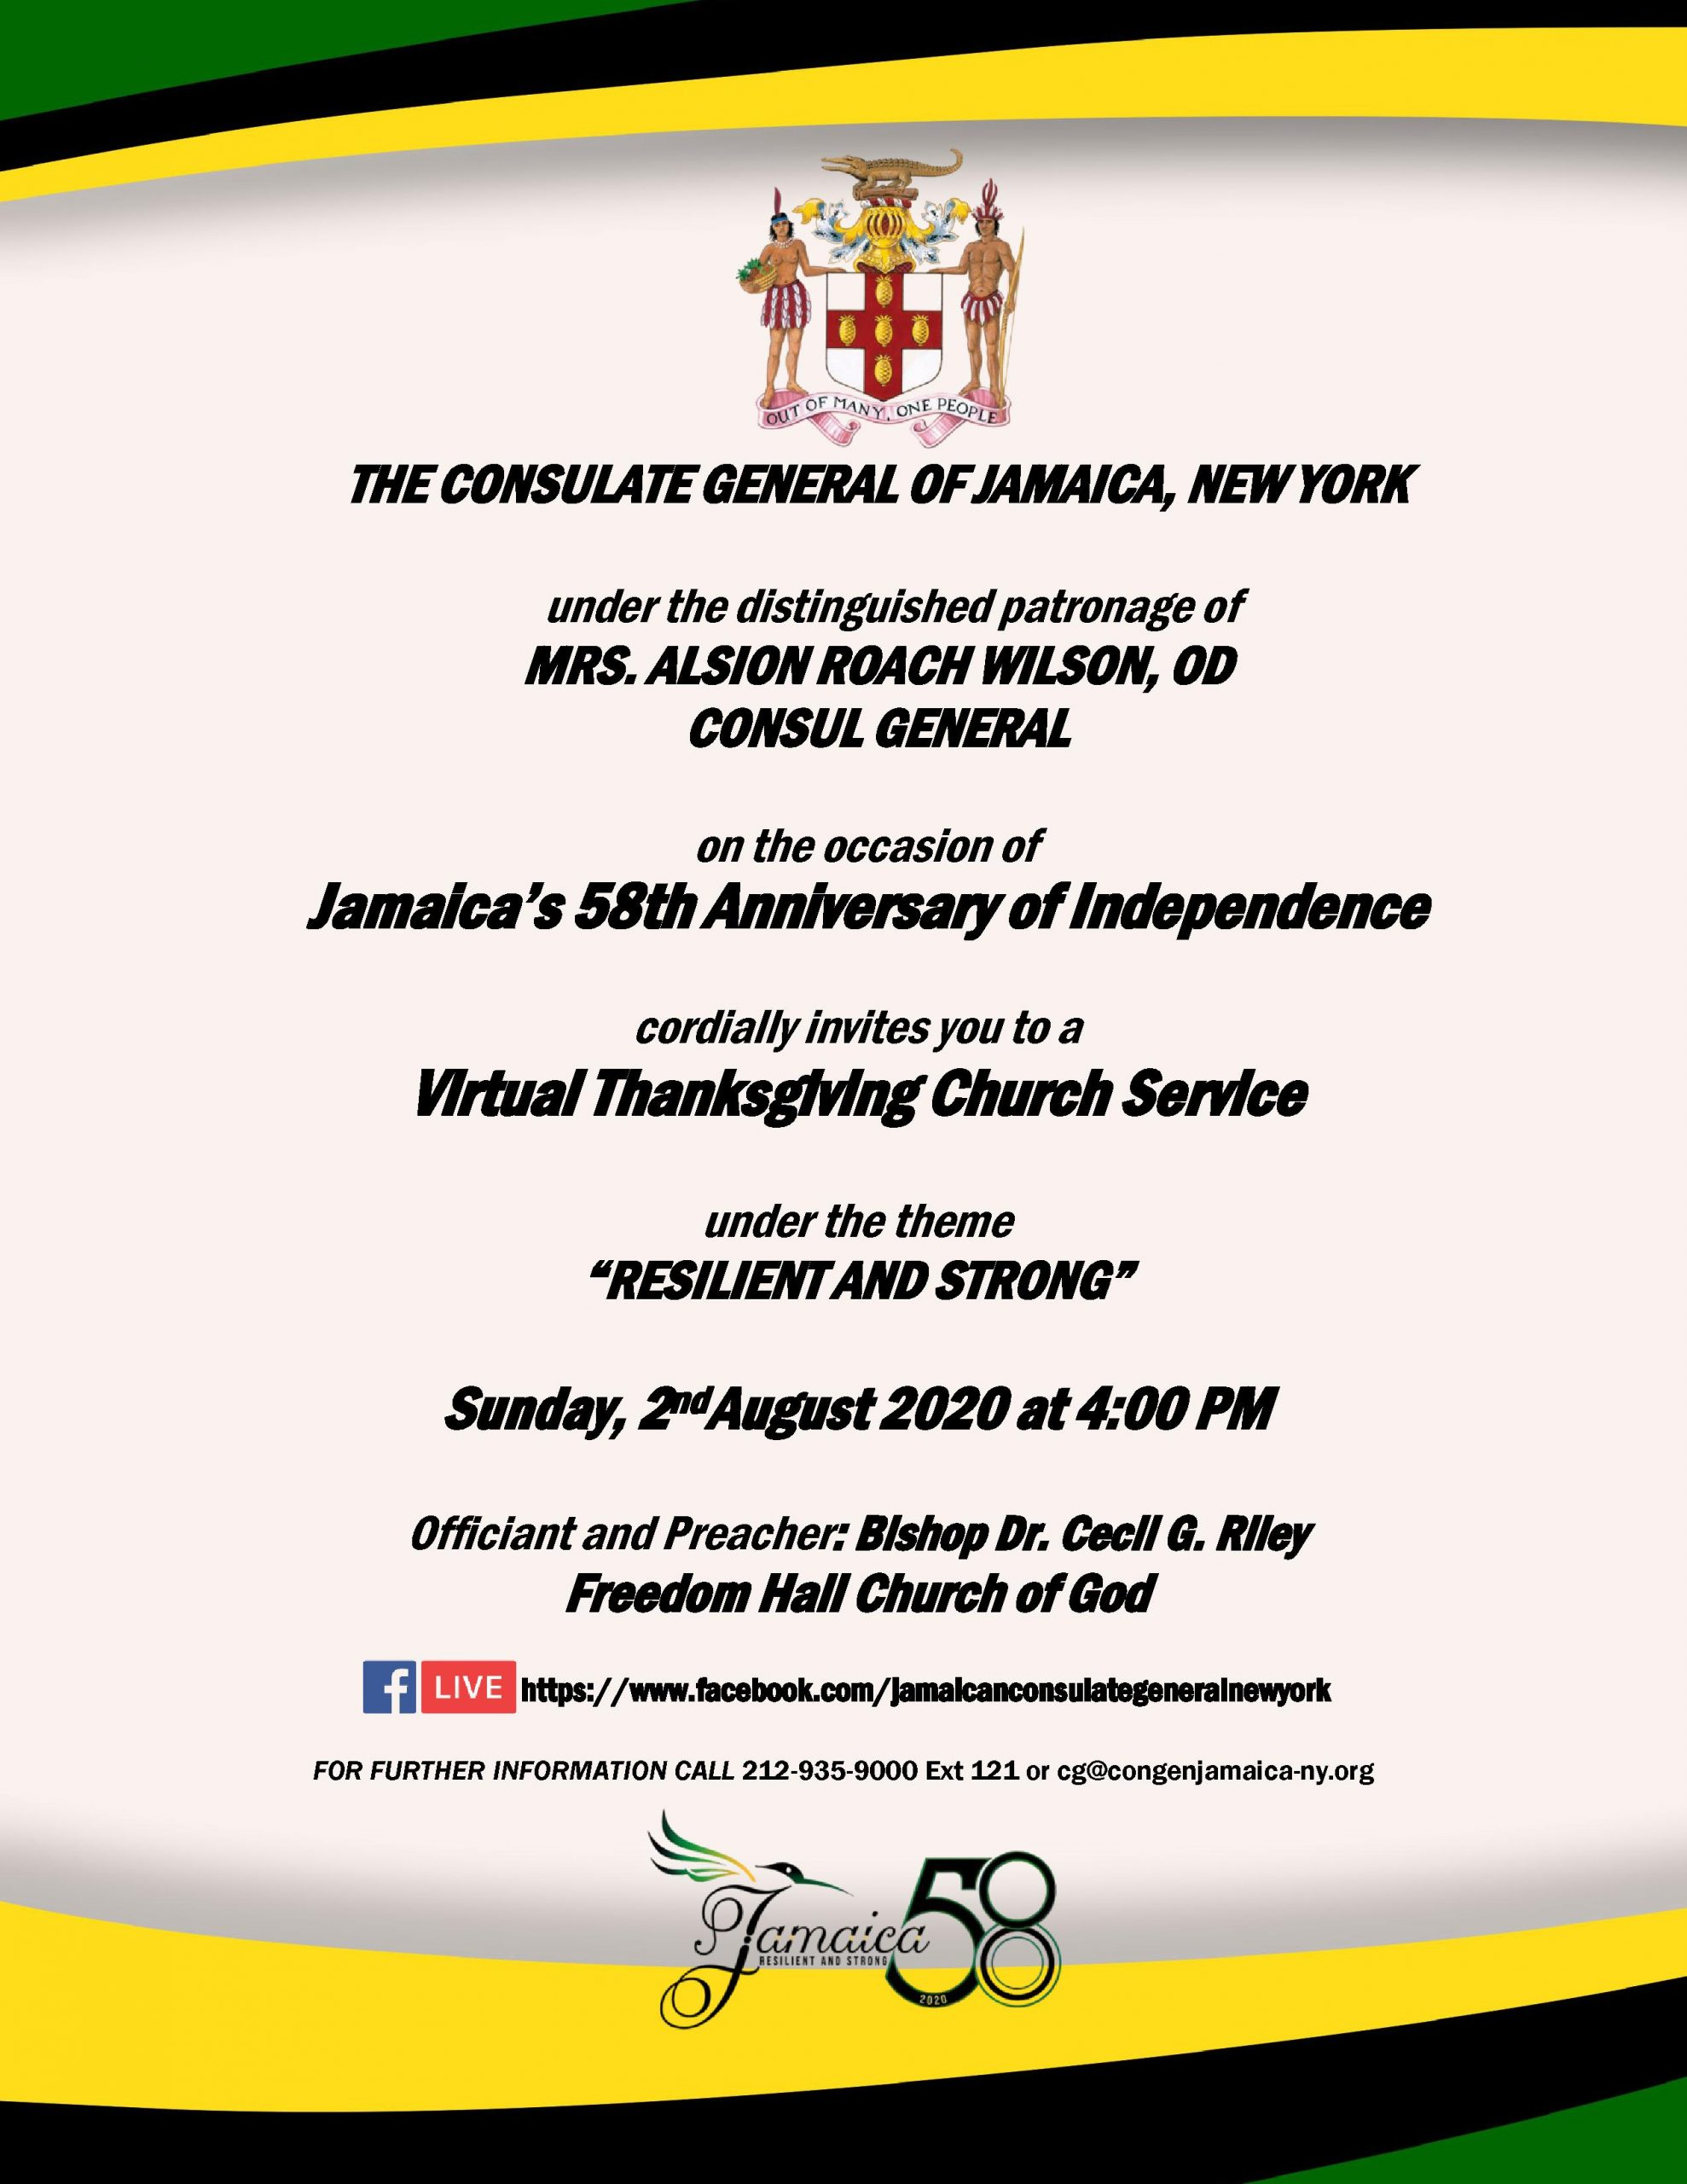 The Consulate General of Jamaica, New York